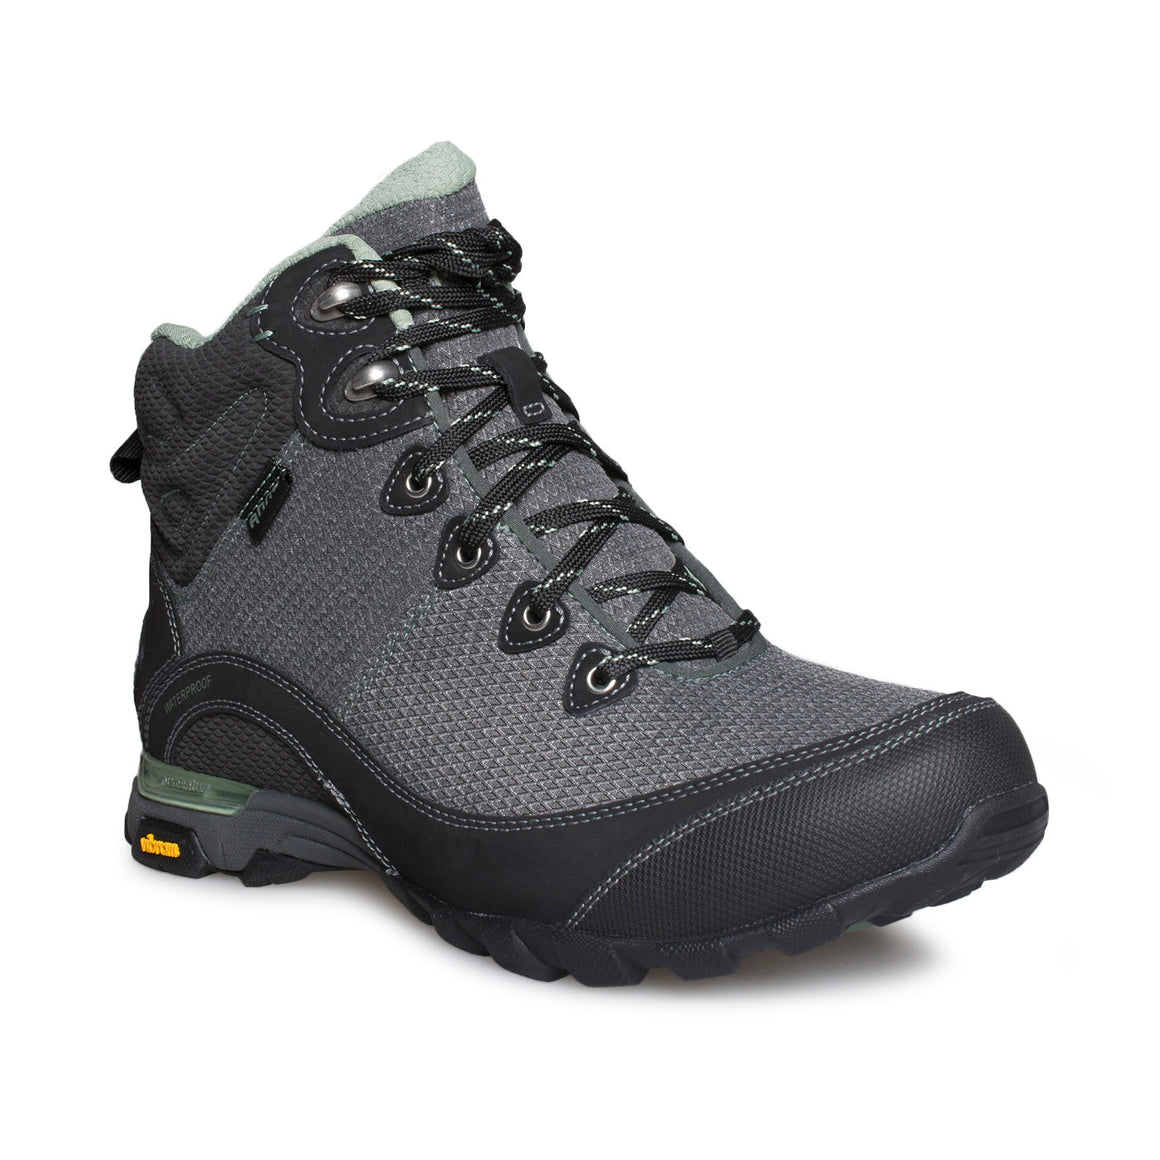 Ahnu Sugarpine II WP Boot Black / Green Bay - Women's